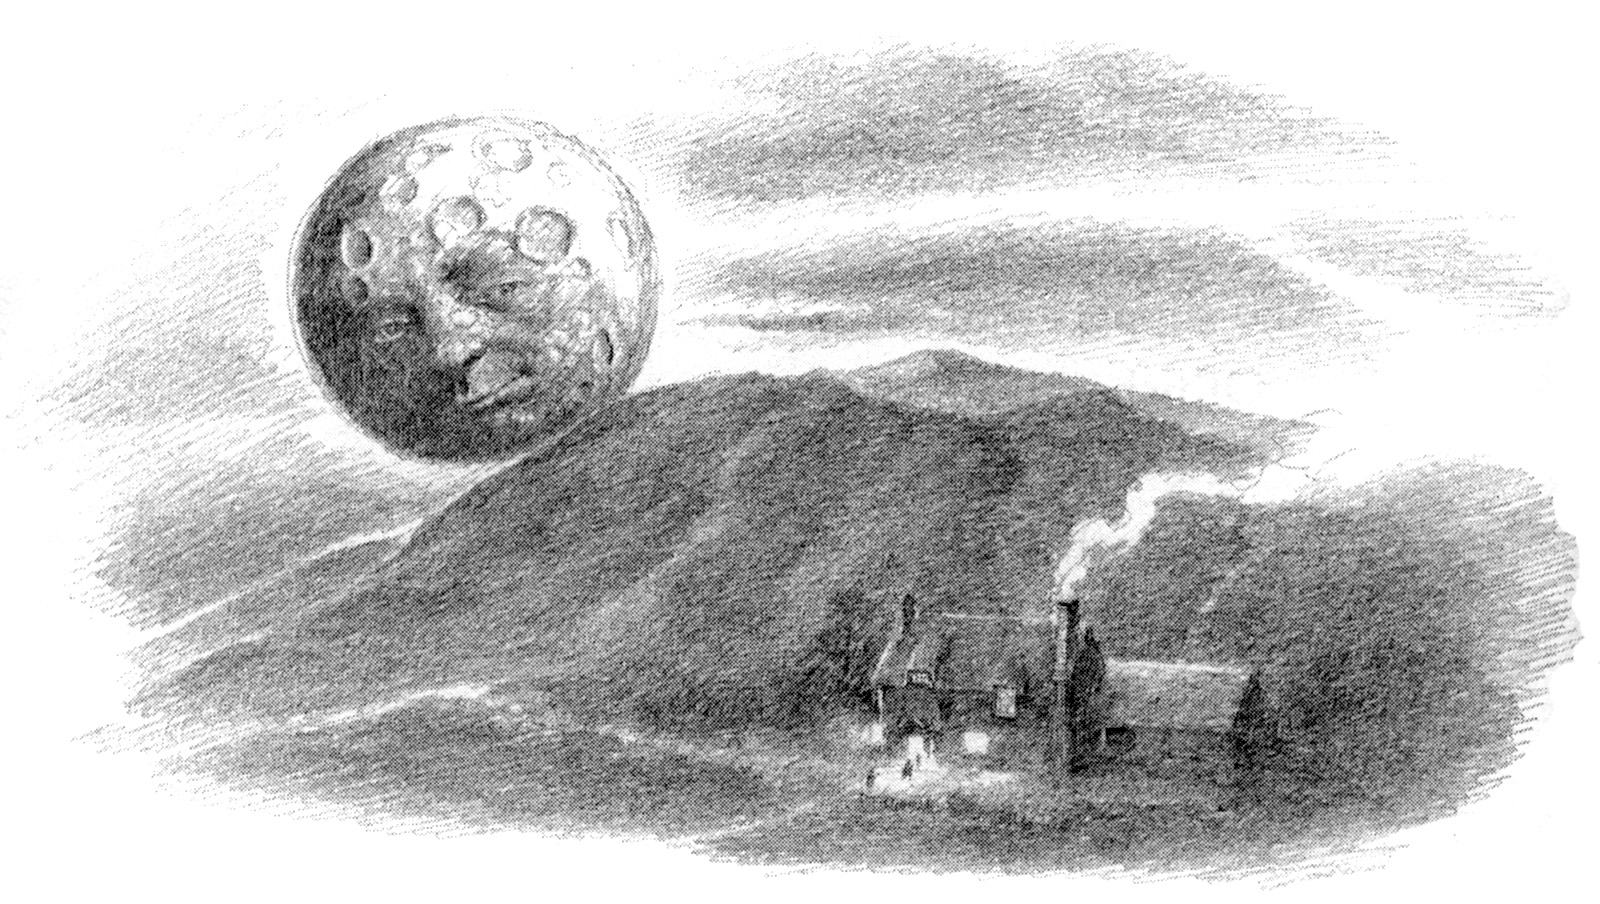 alan_lee_tales from the perilous realm_the man in the moon stayed up too late_01